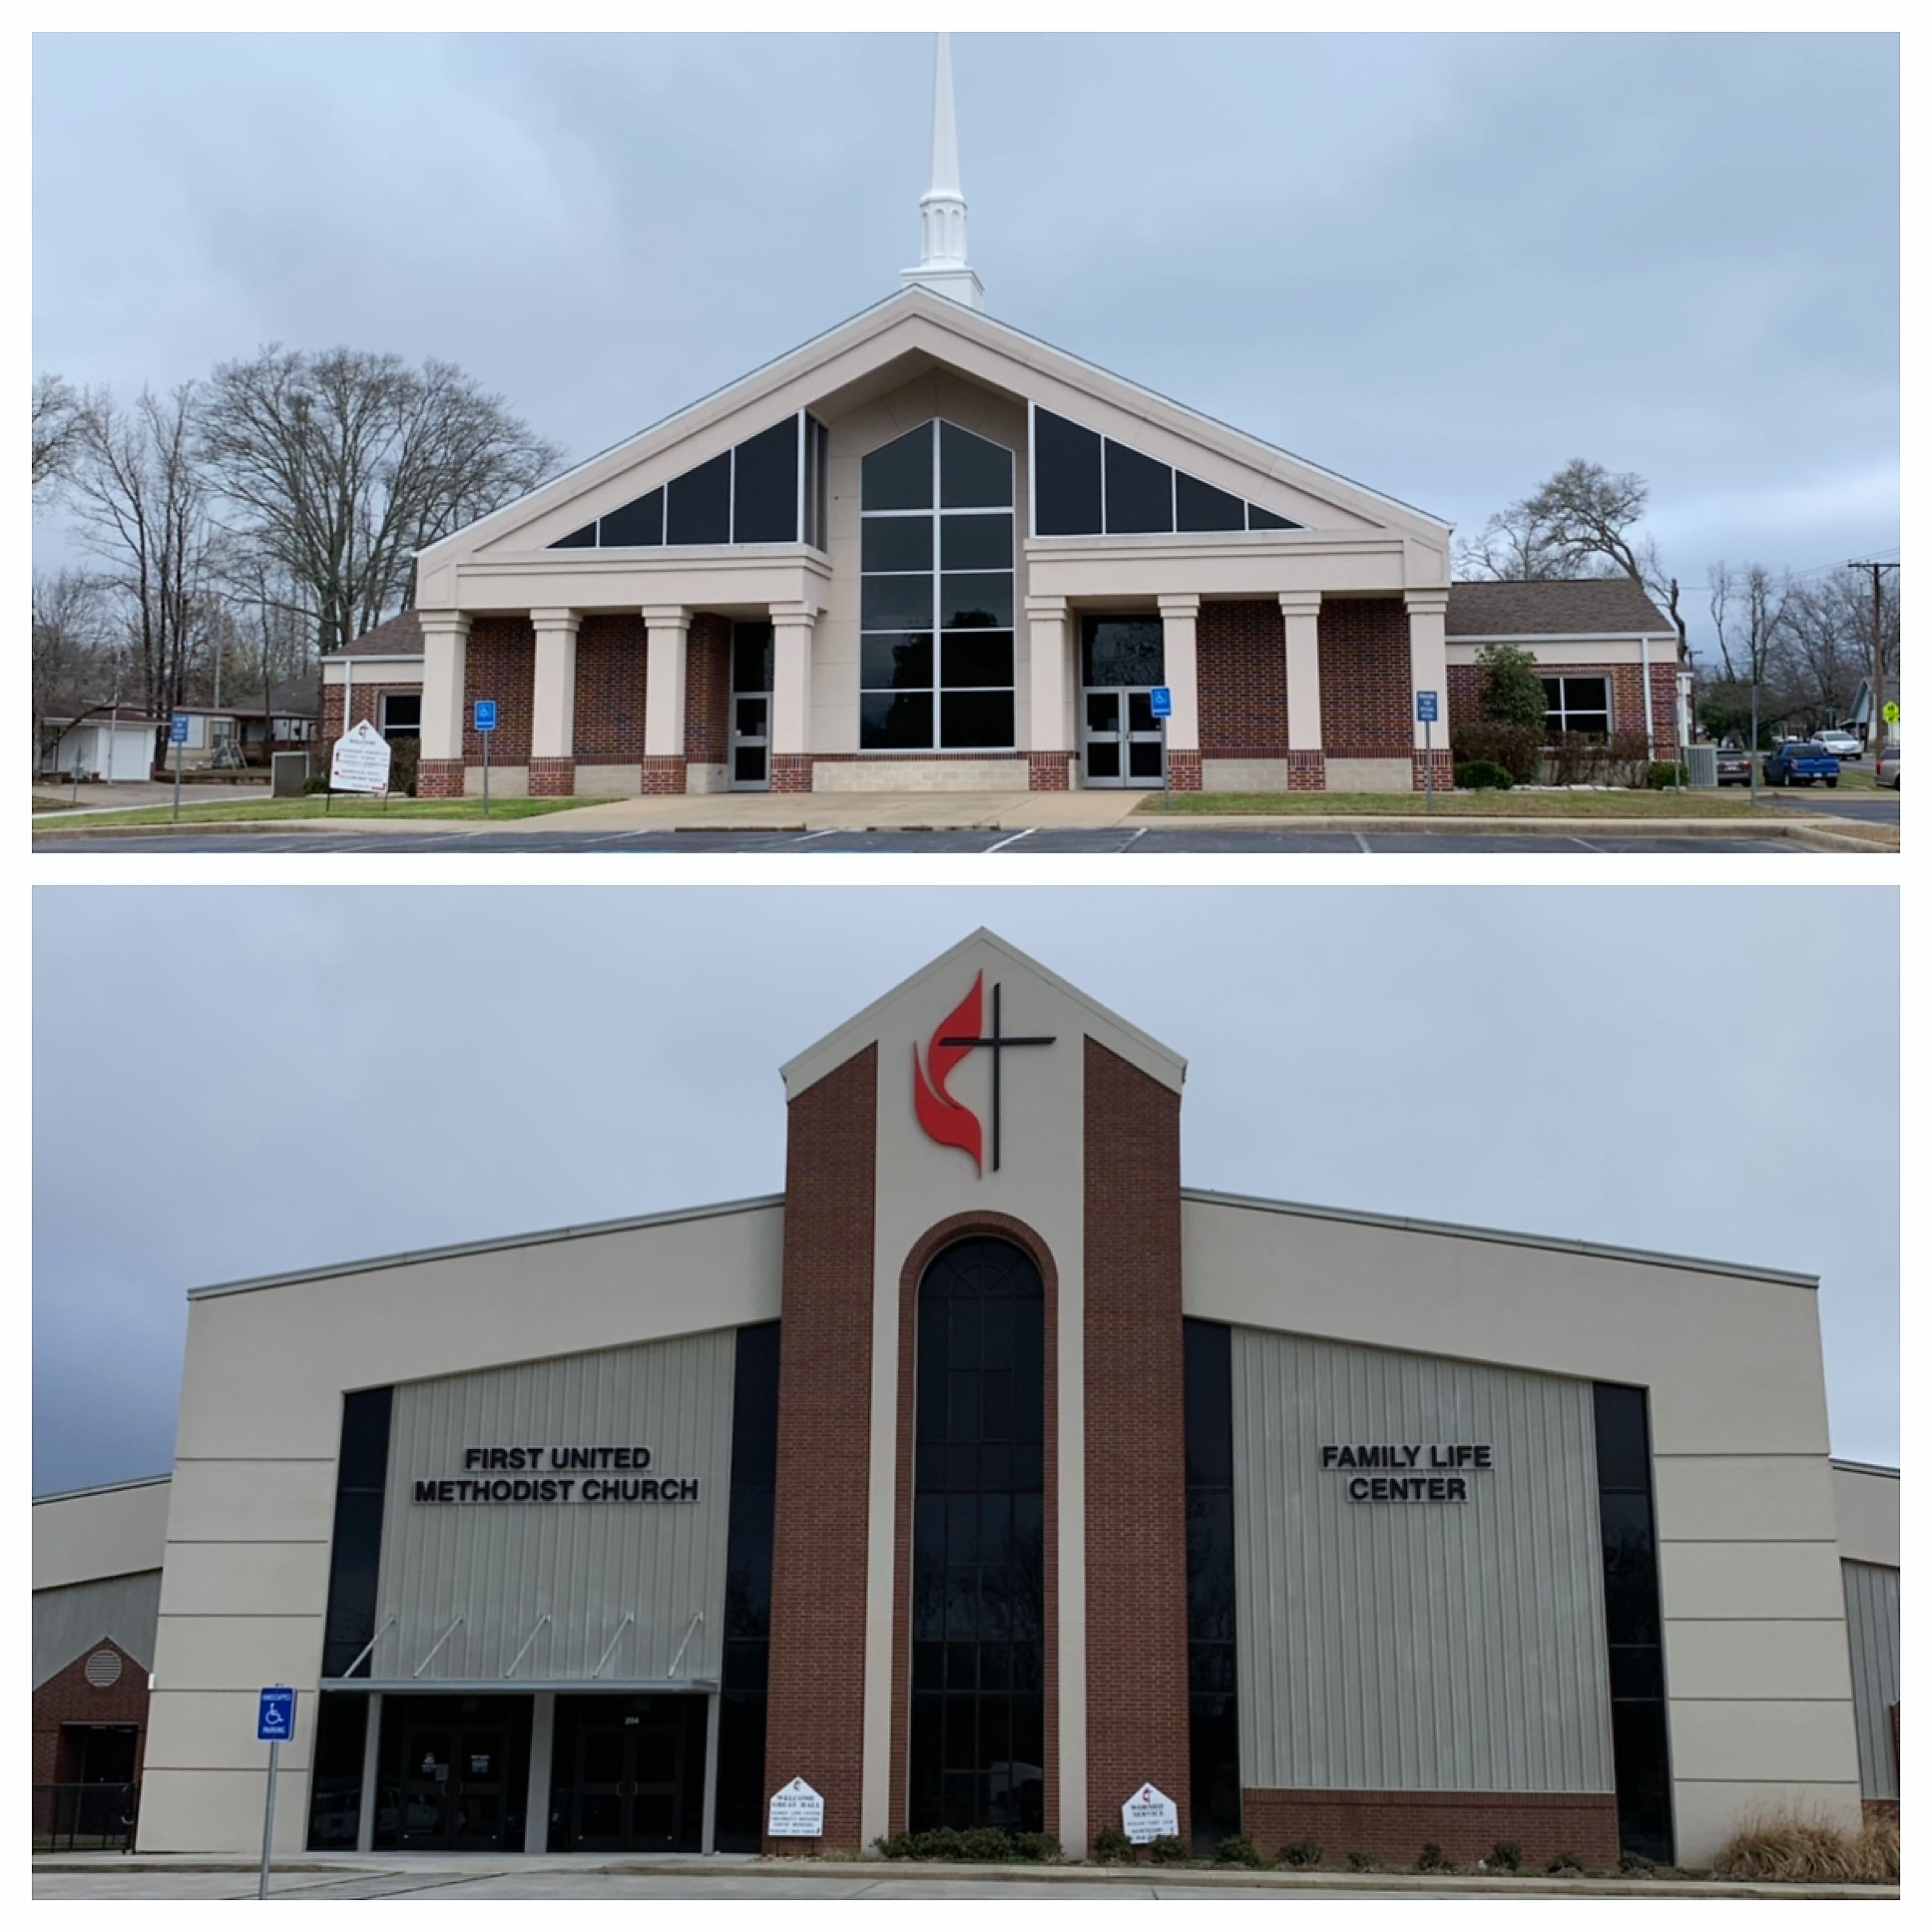 First United Methodist Church Chandler Sanctuary (Top) Family Life Center (Bottom).JPG